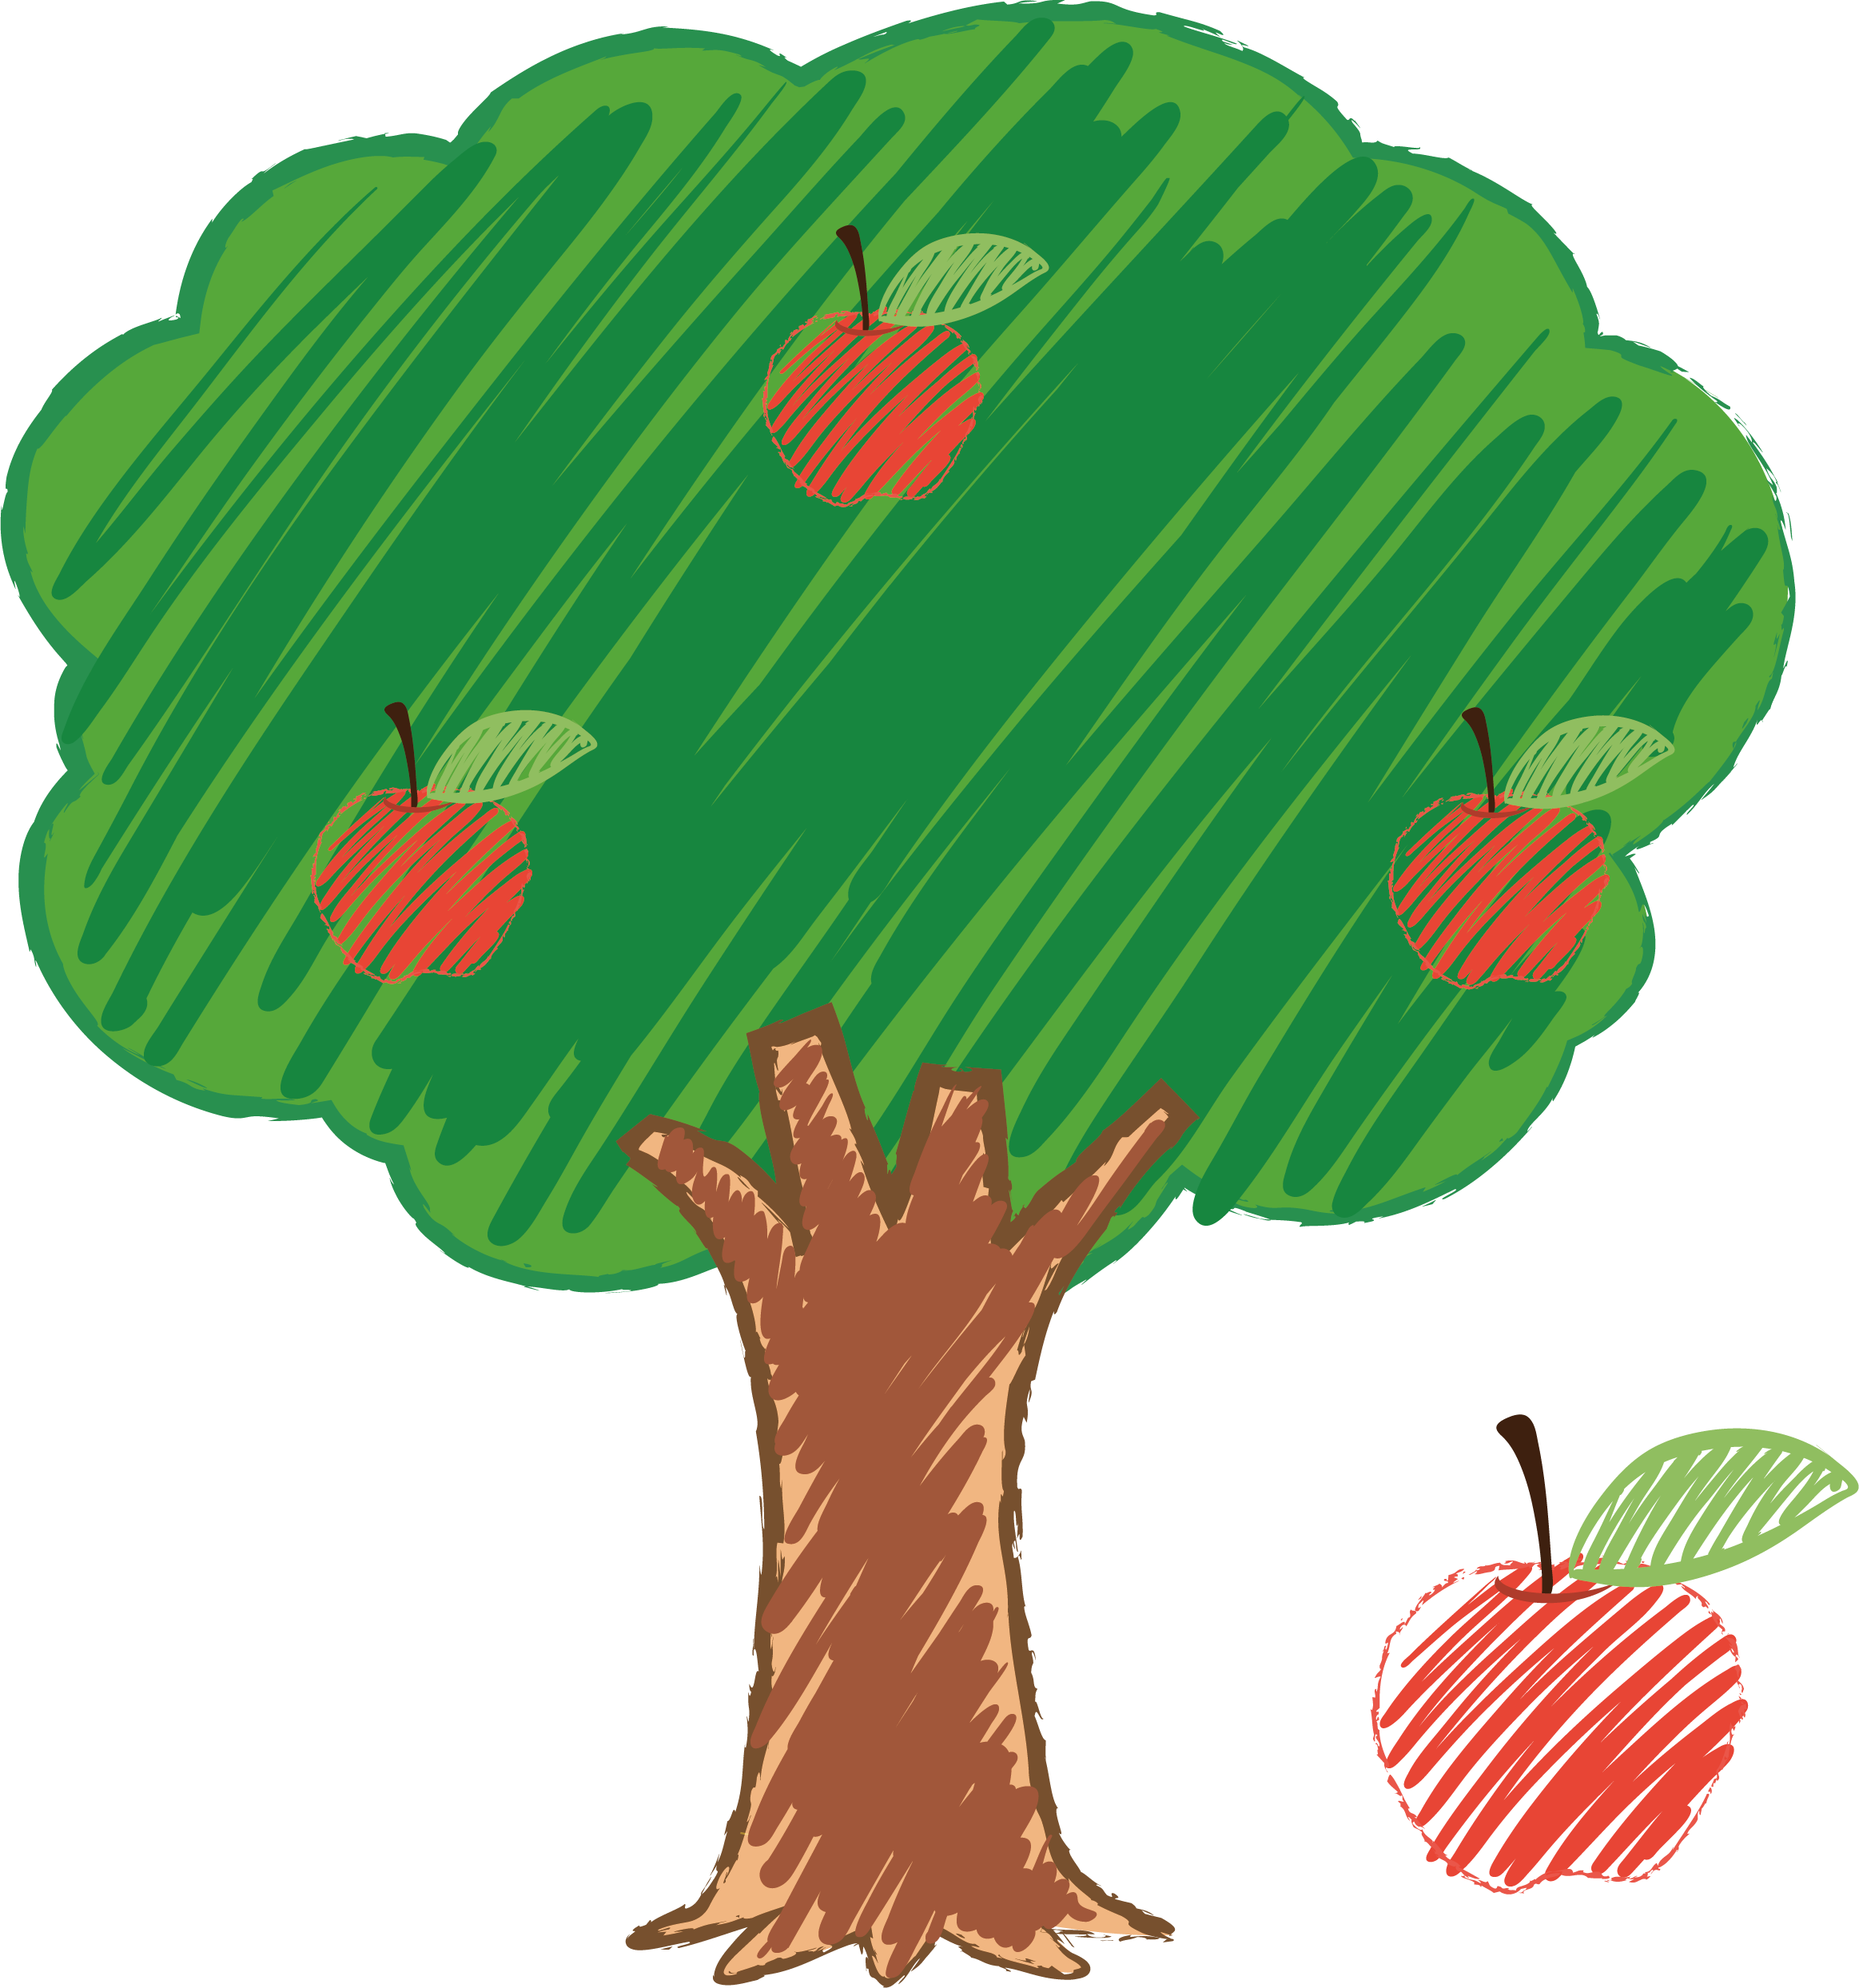 Leaf clipart apple tree, Picture #1524432 leaf clipart apple.